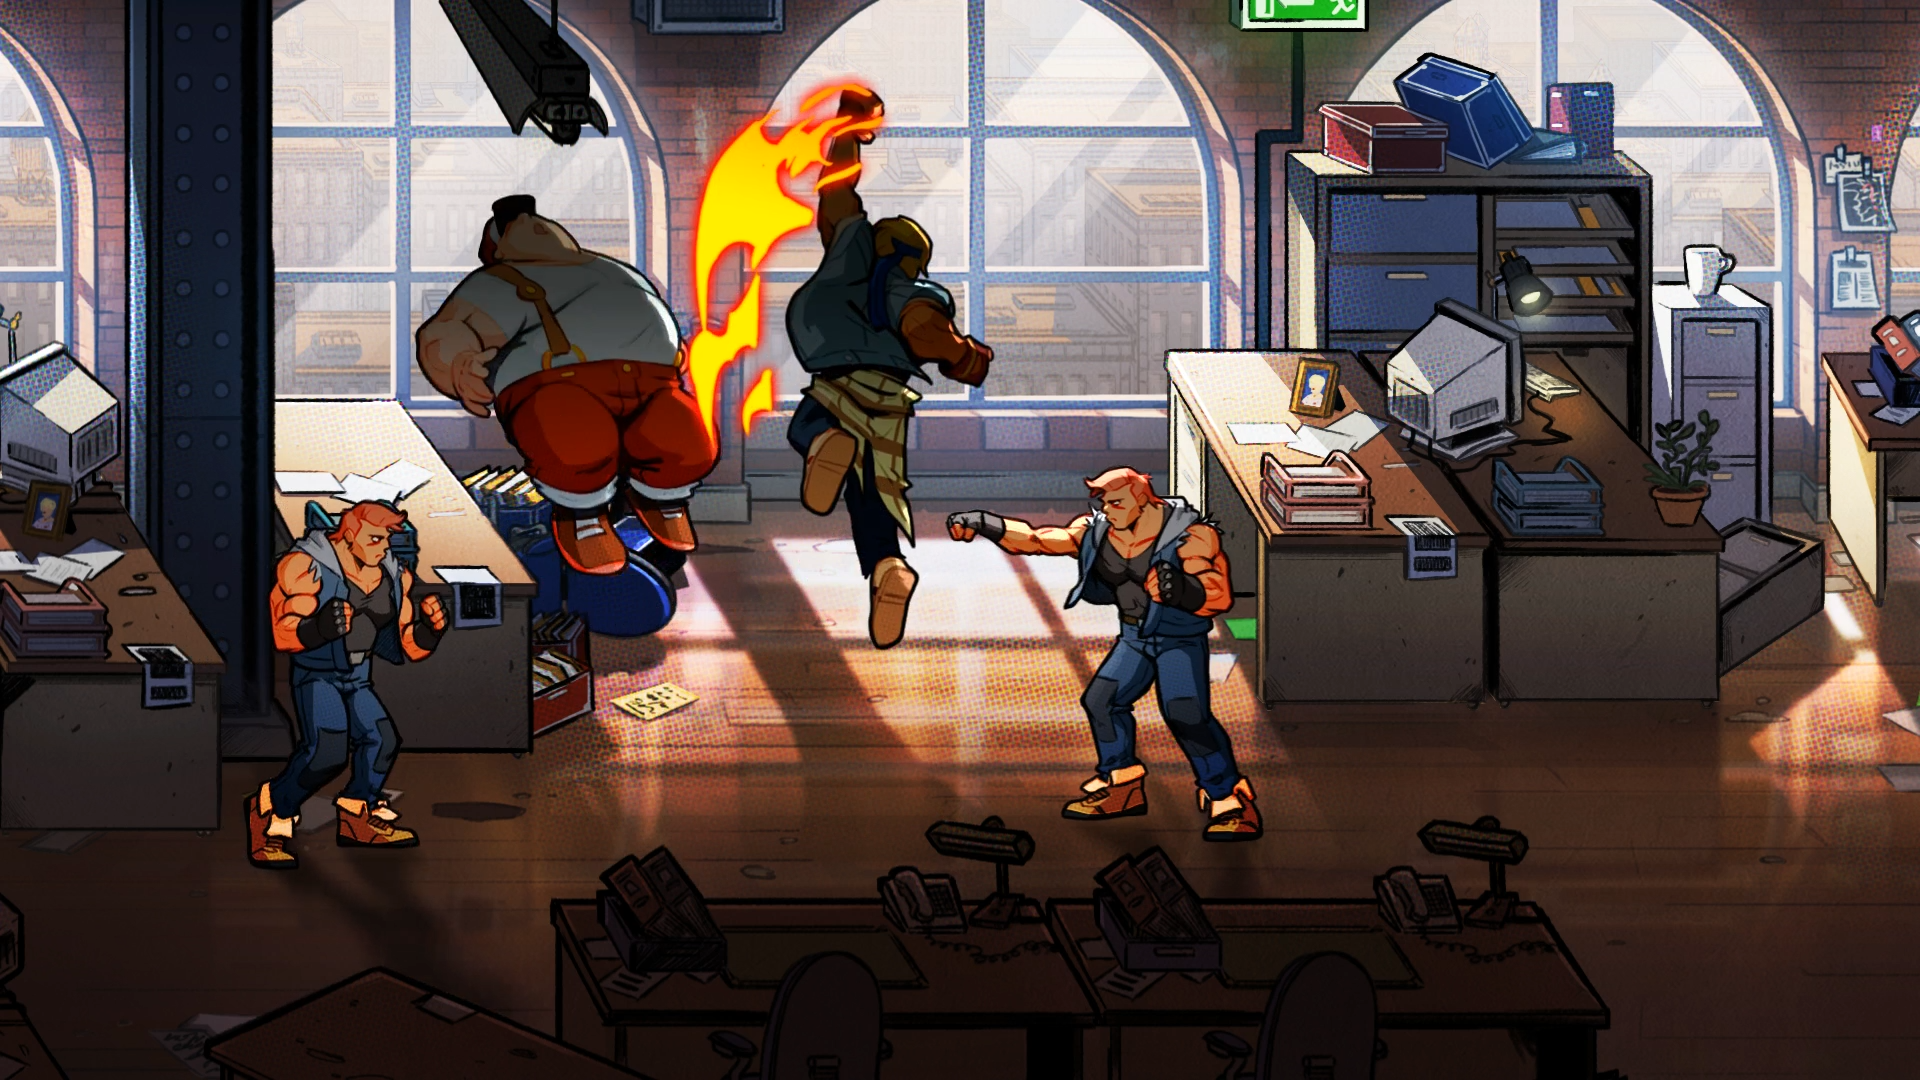 Streets of rage 4 remake android | Streets Of Rage 4 Is A Nostalgic